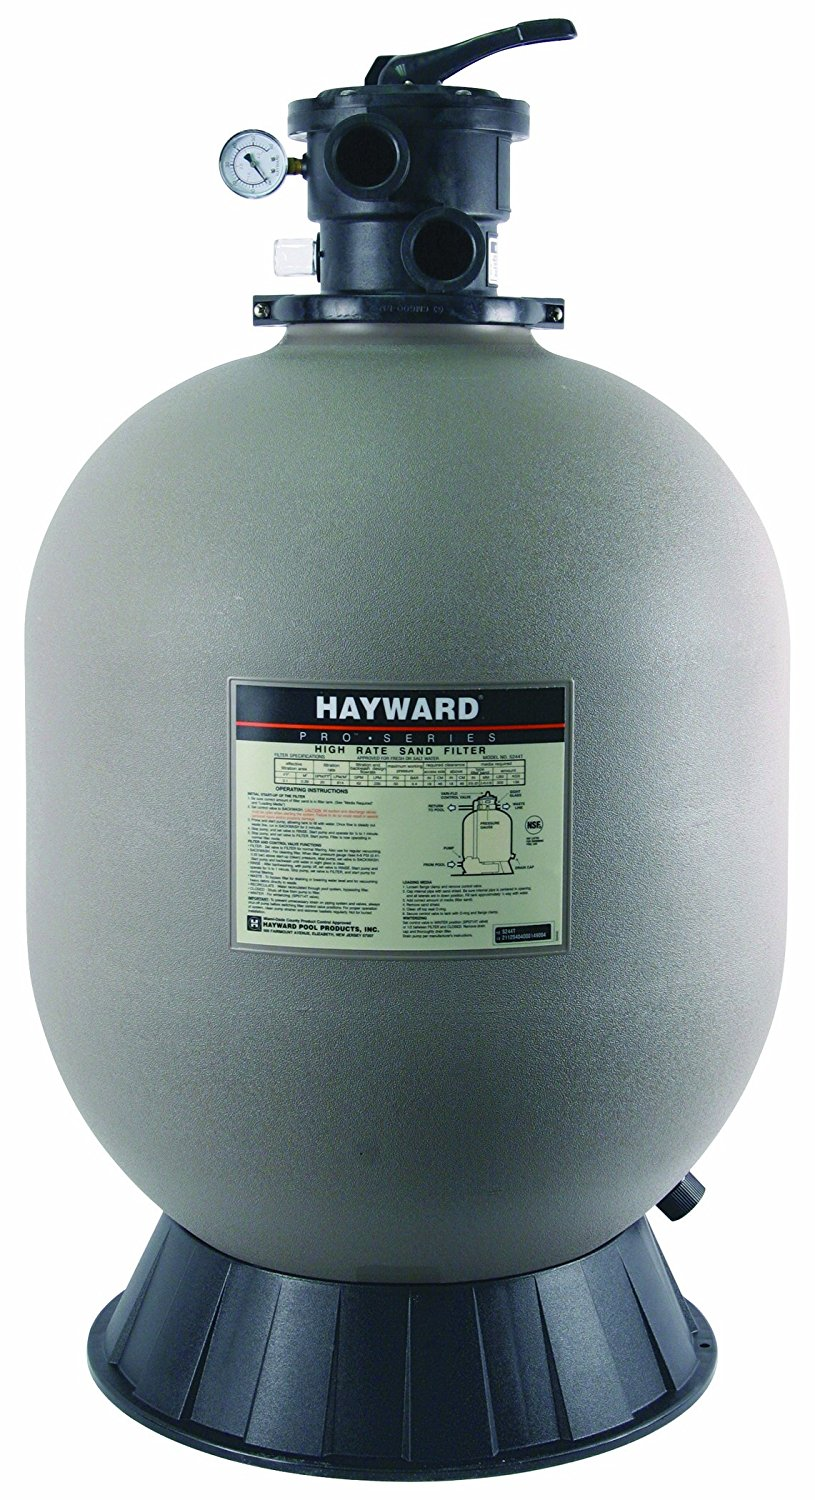 Hayward S244T ProSeries